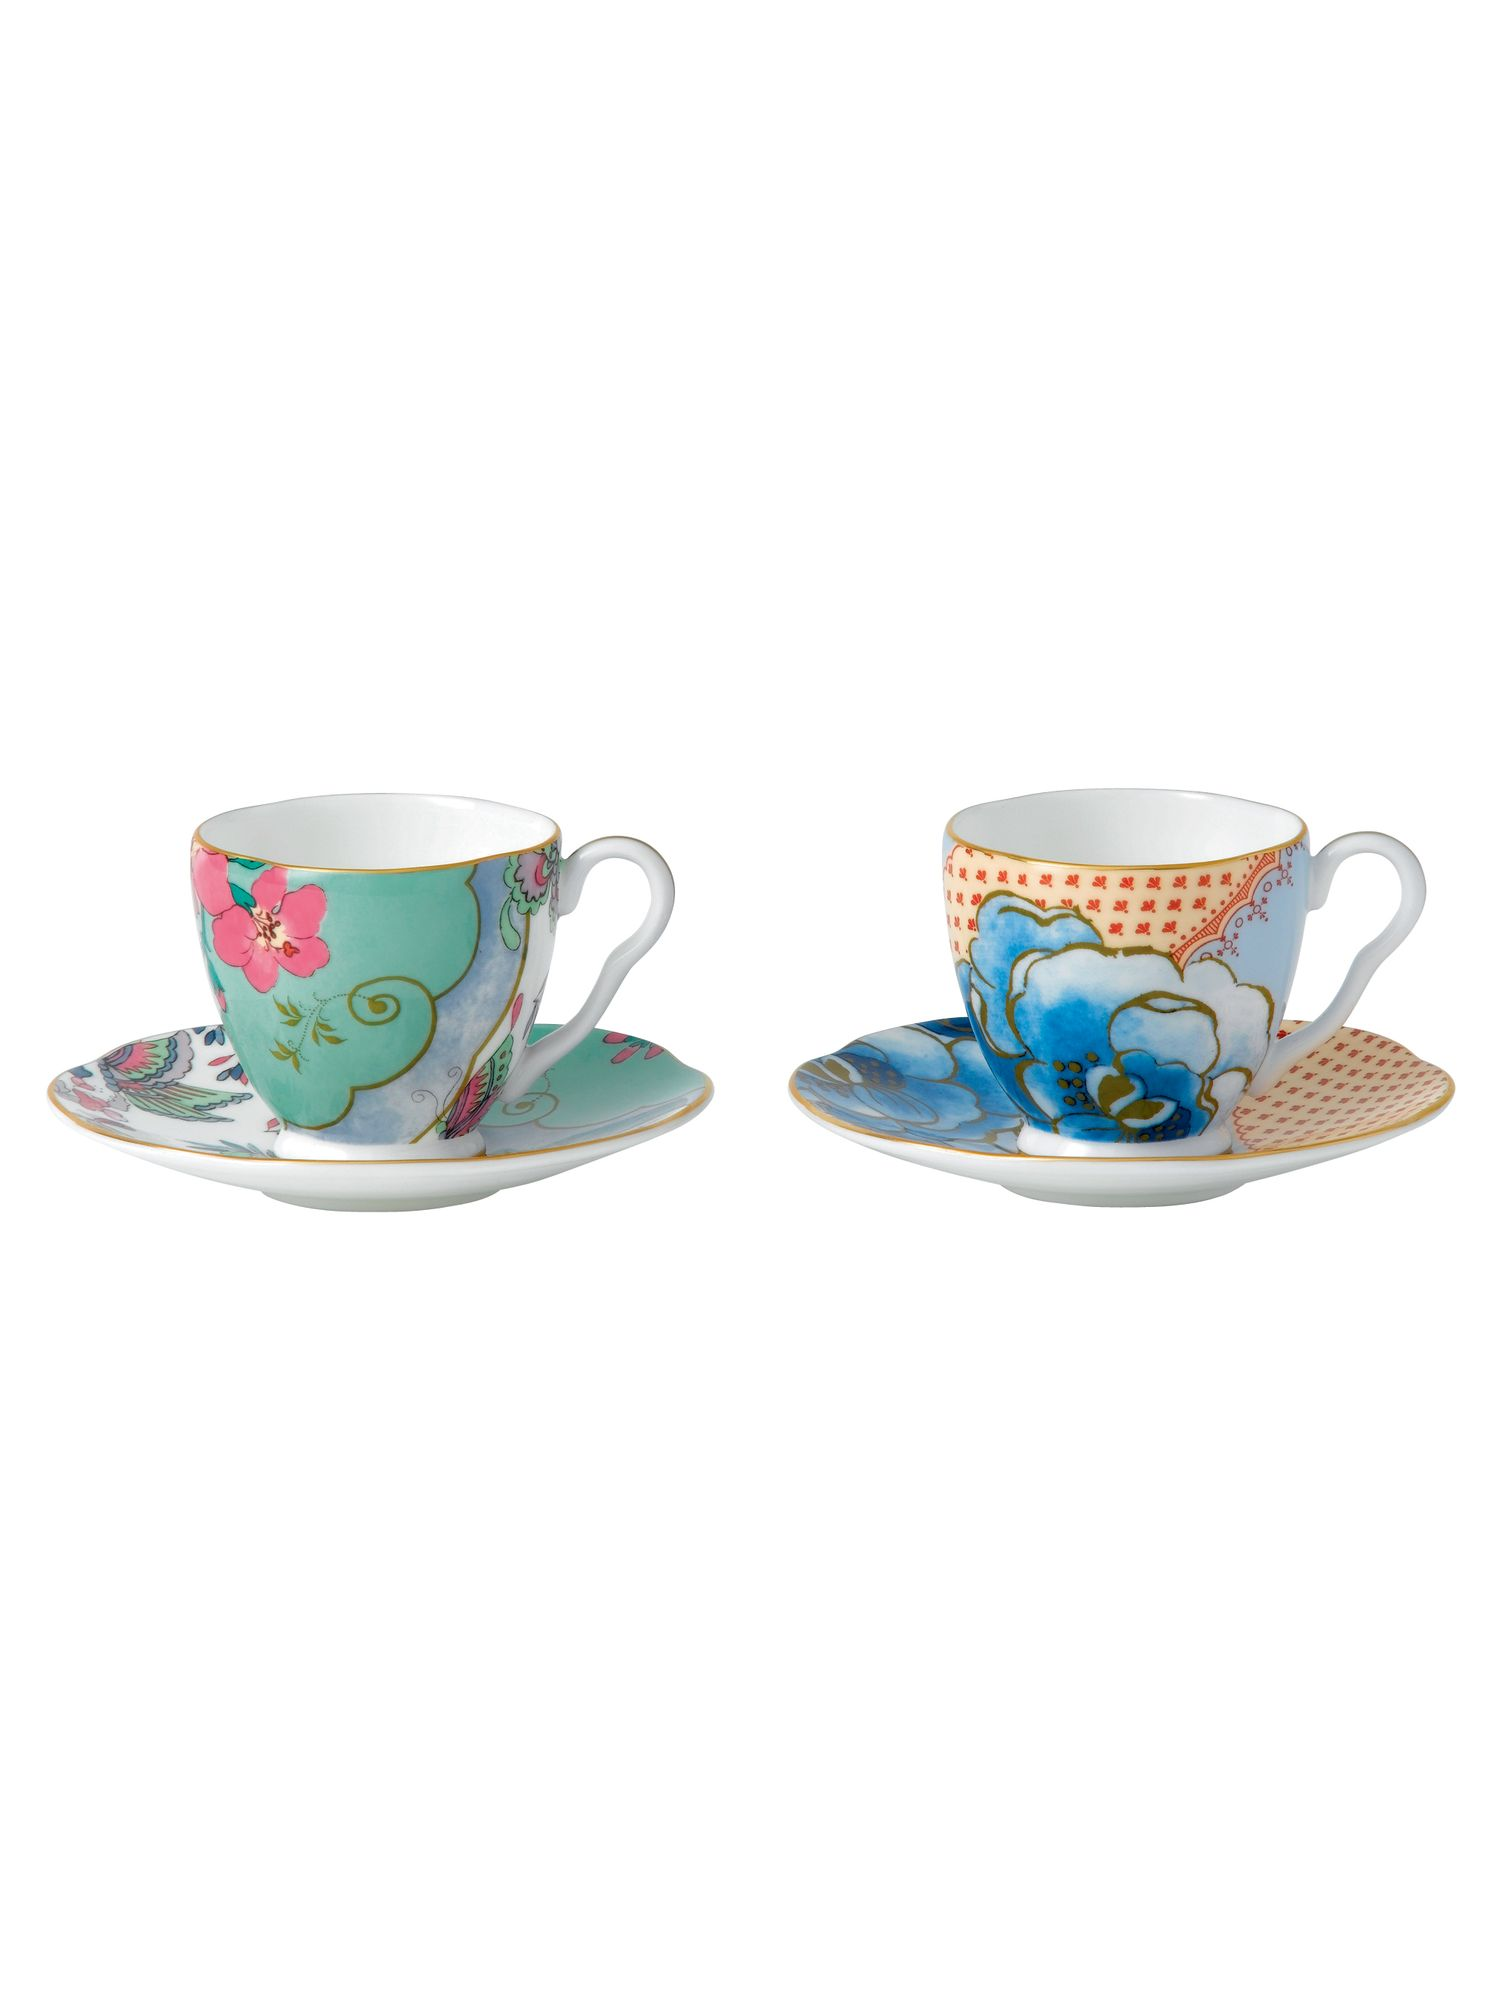 Butterfly bloom espresso cup and saucer